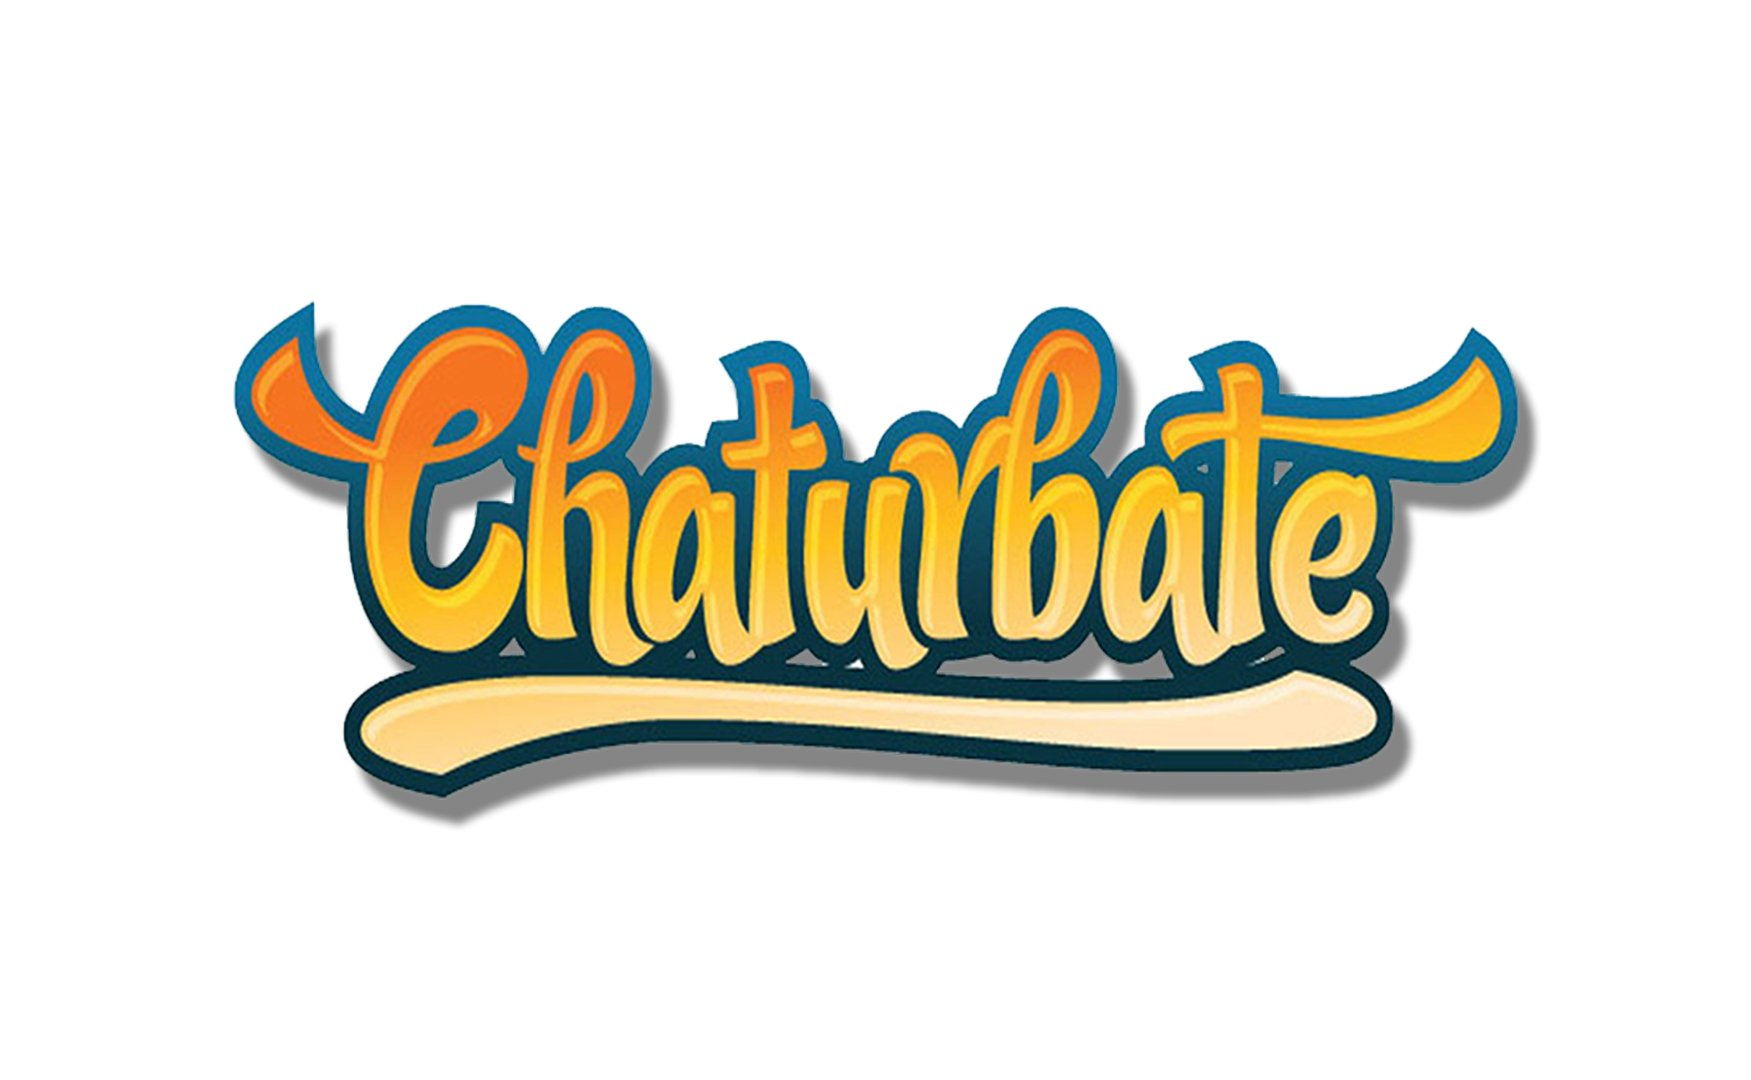 How Does Chaturbate Work? How to Make Money on Chaturbate